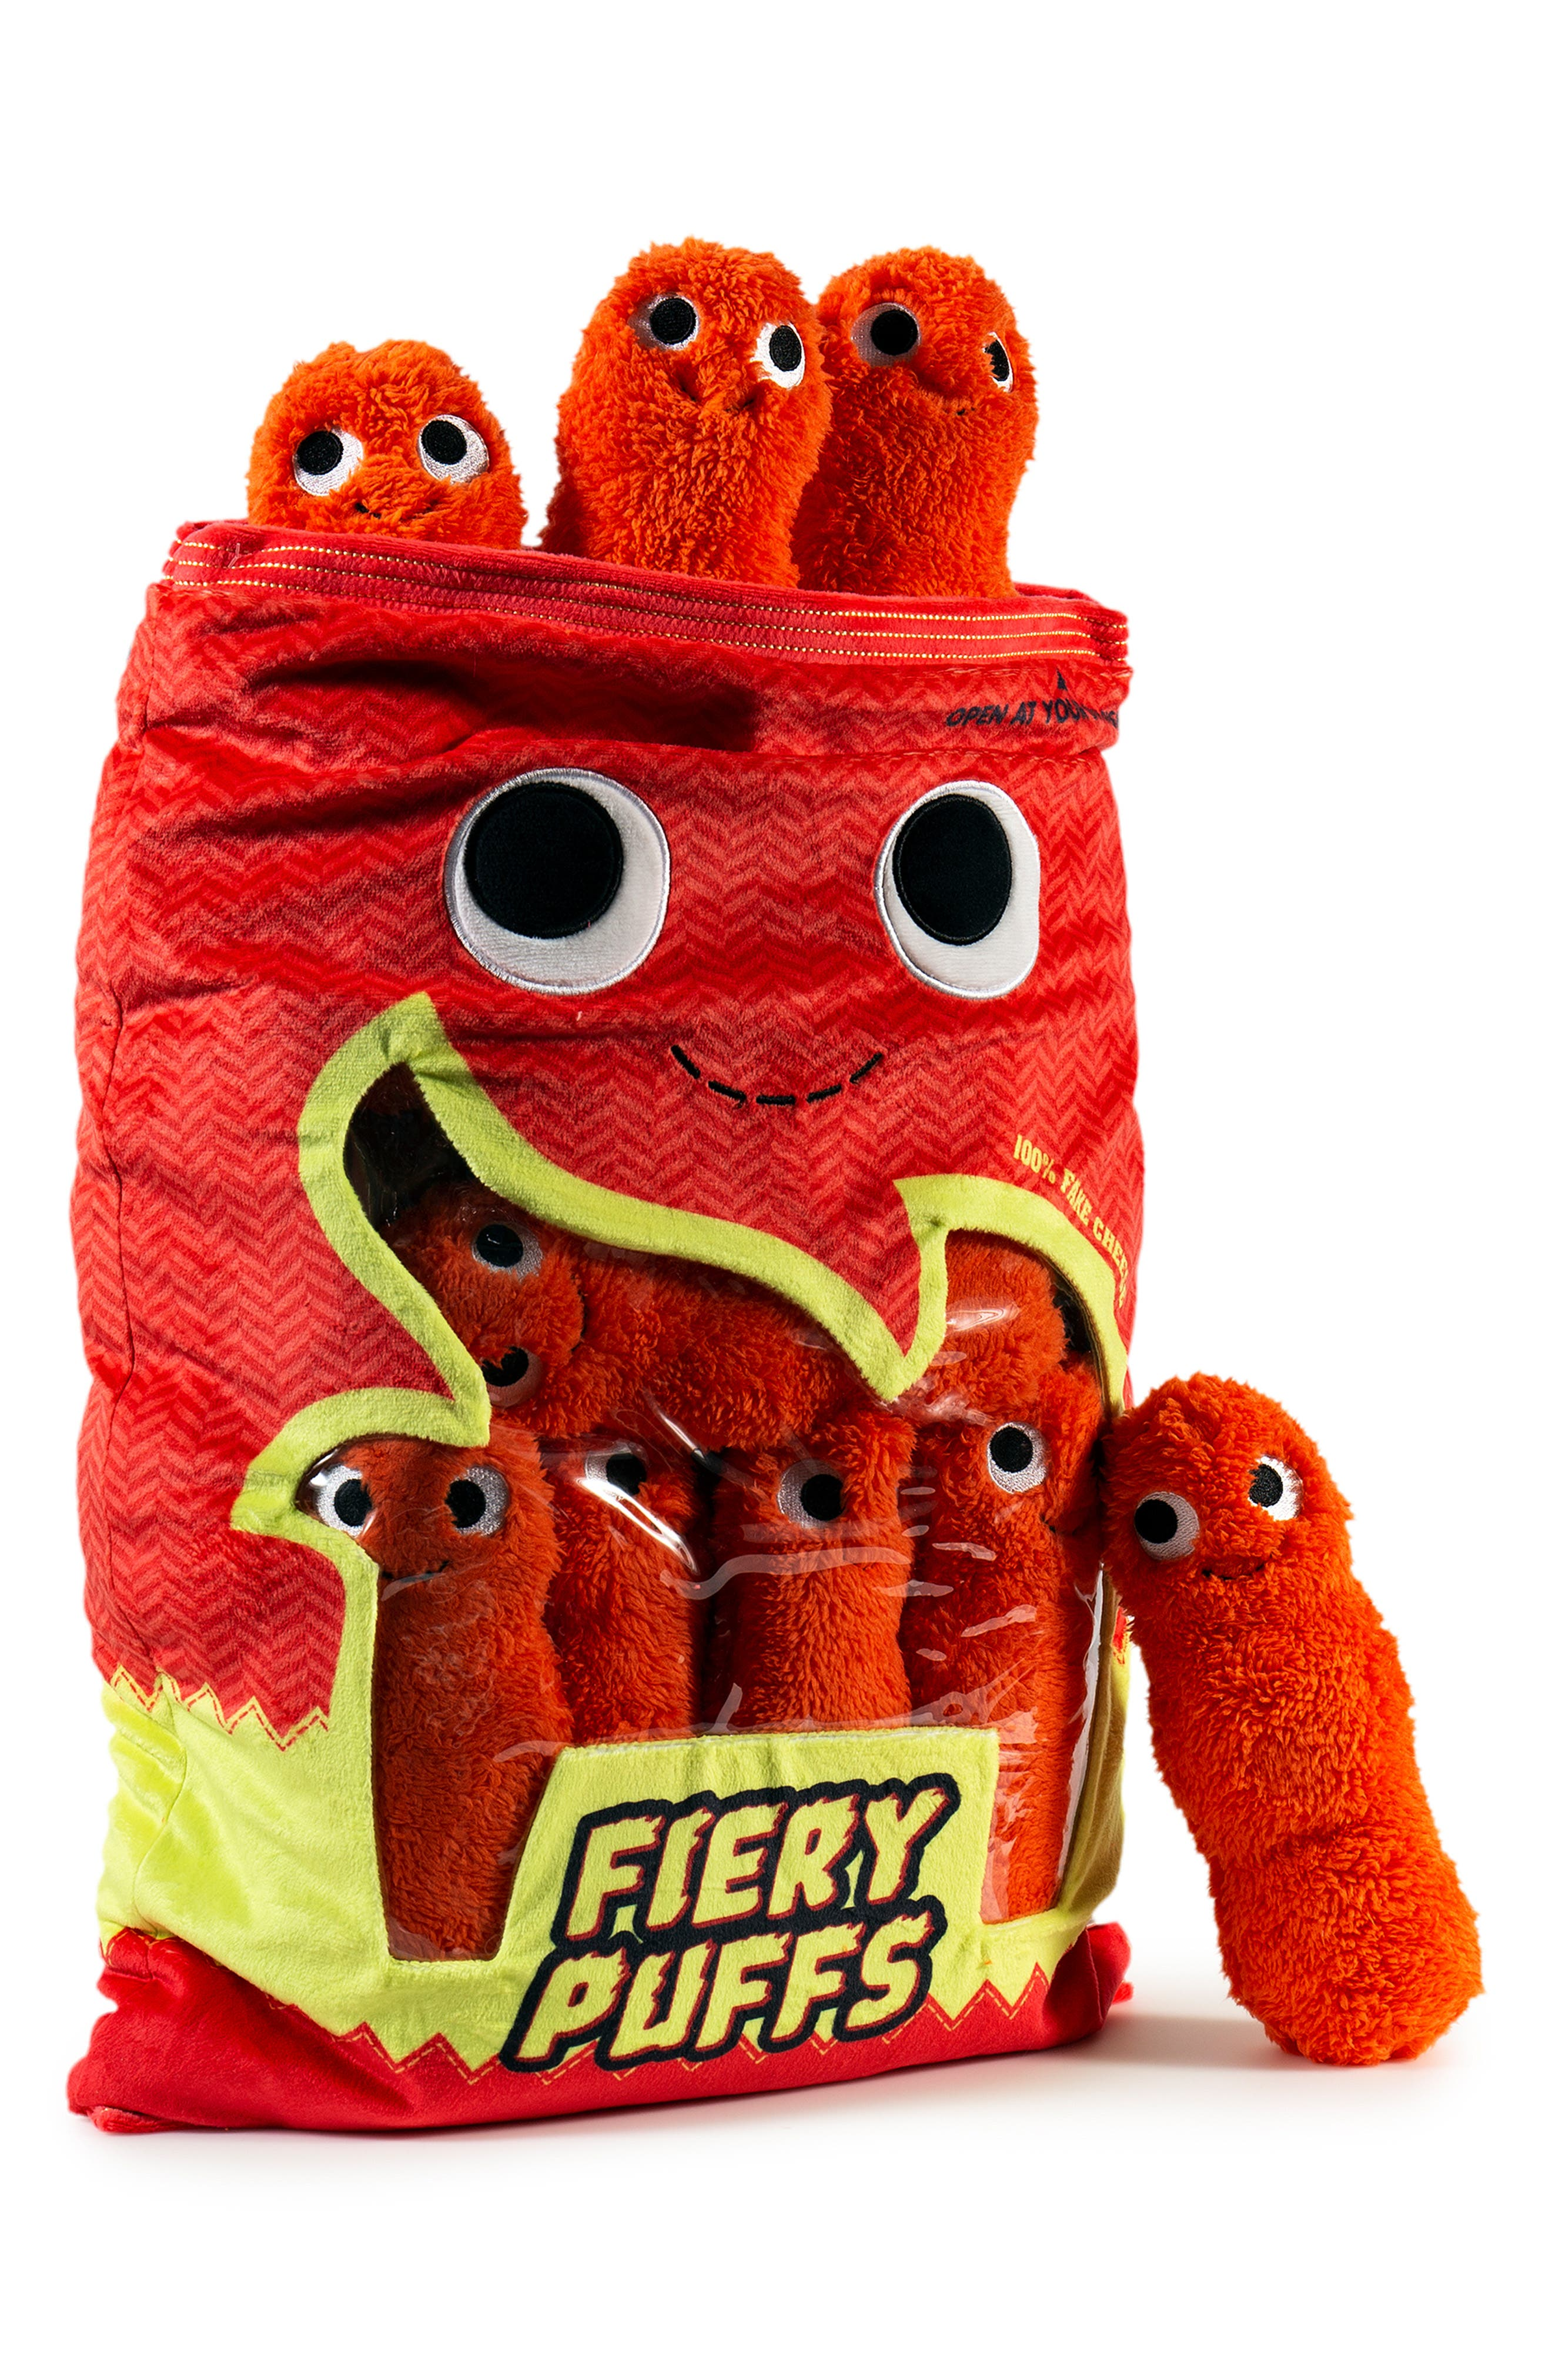 Yummy World Extra Large Frye & The Fiery Puffs Plush Toy,                             Alternate thumbnail 3, color,                             960